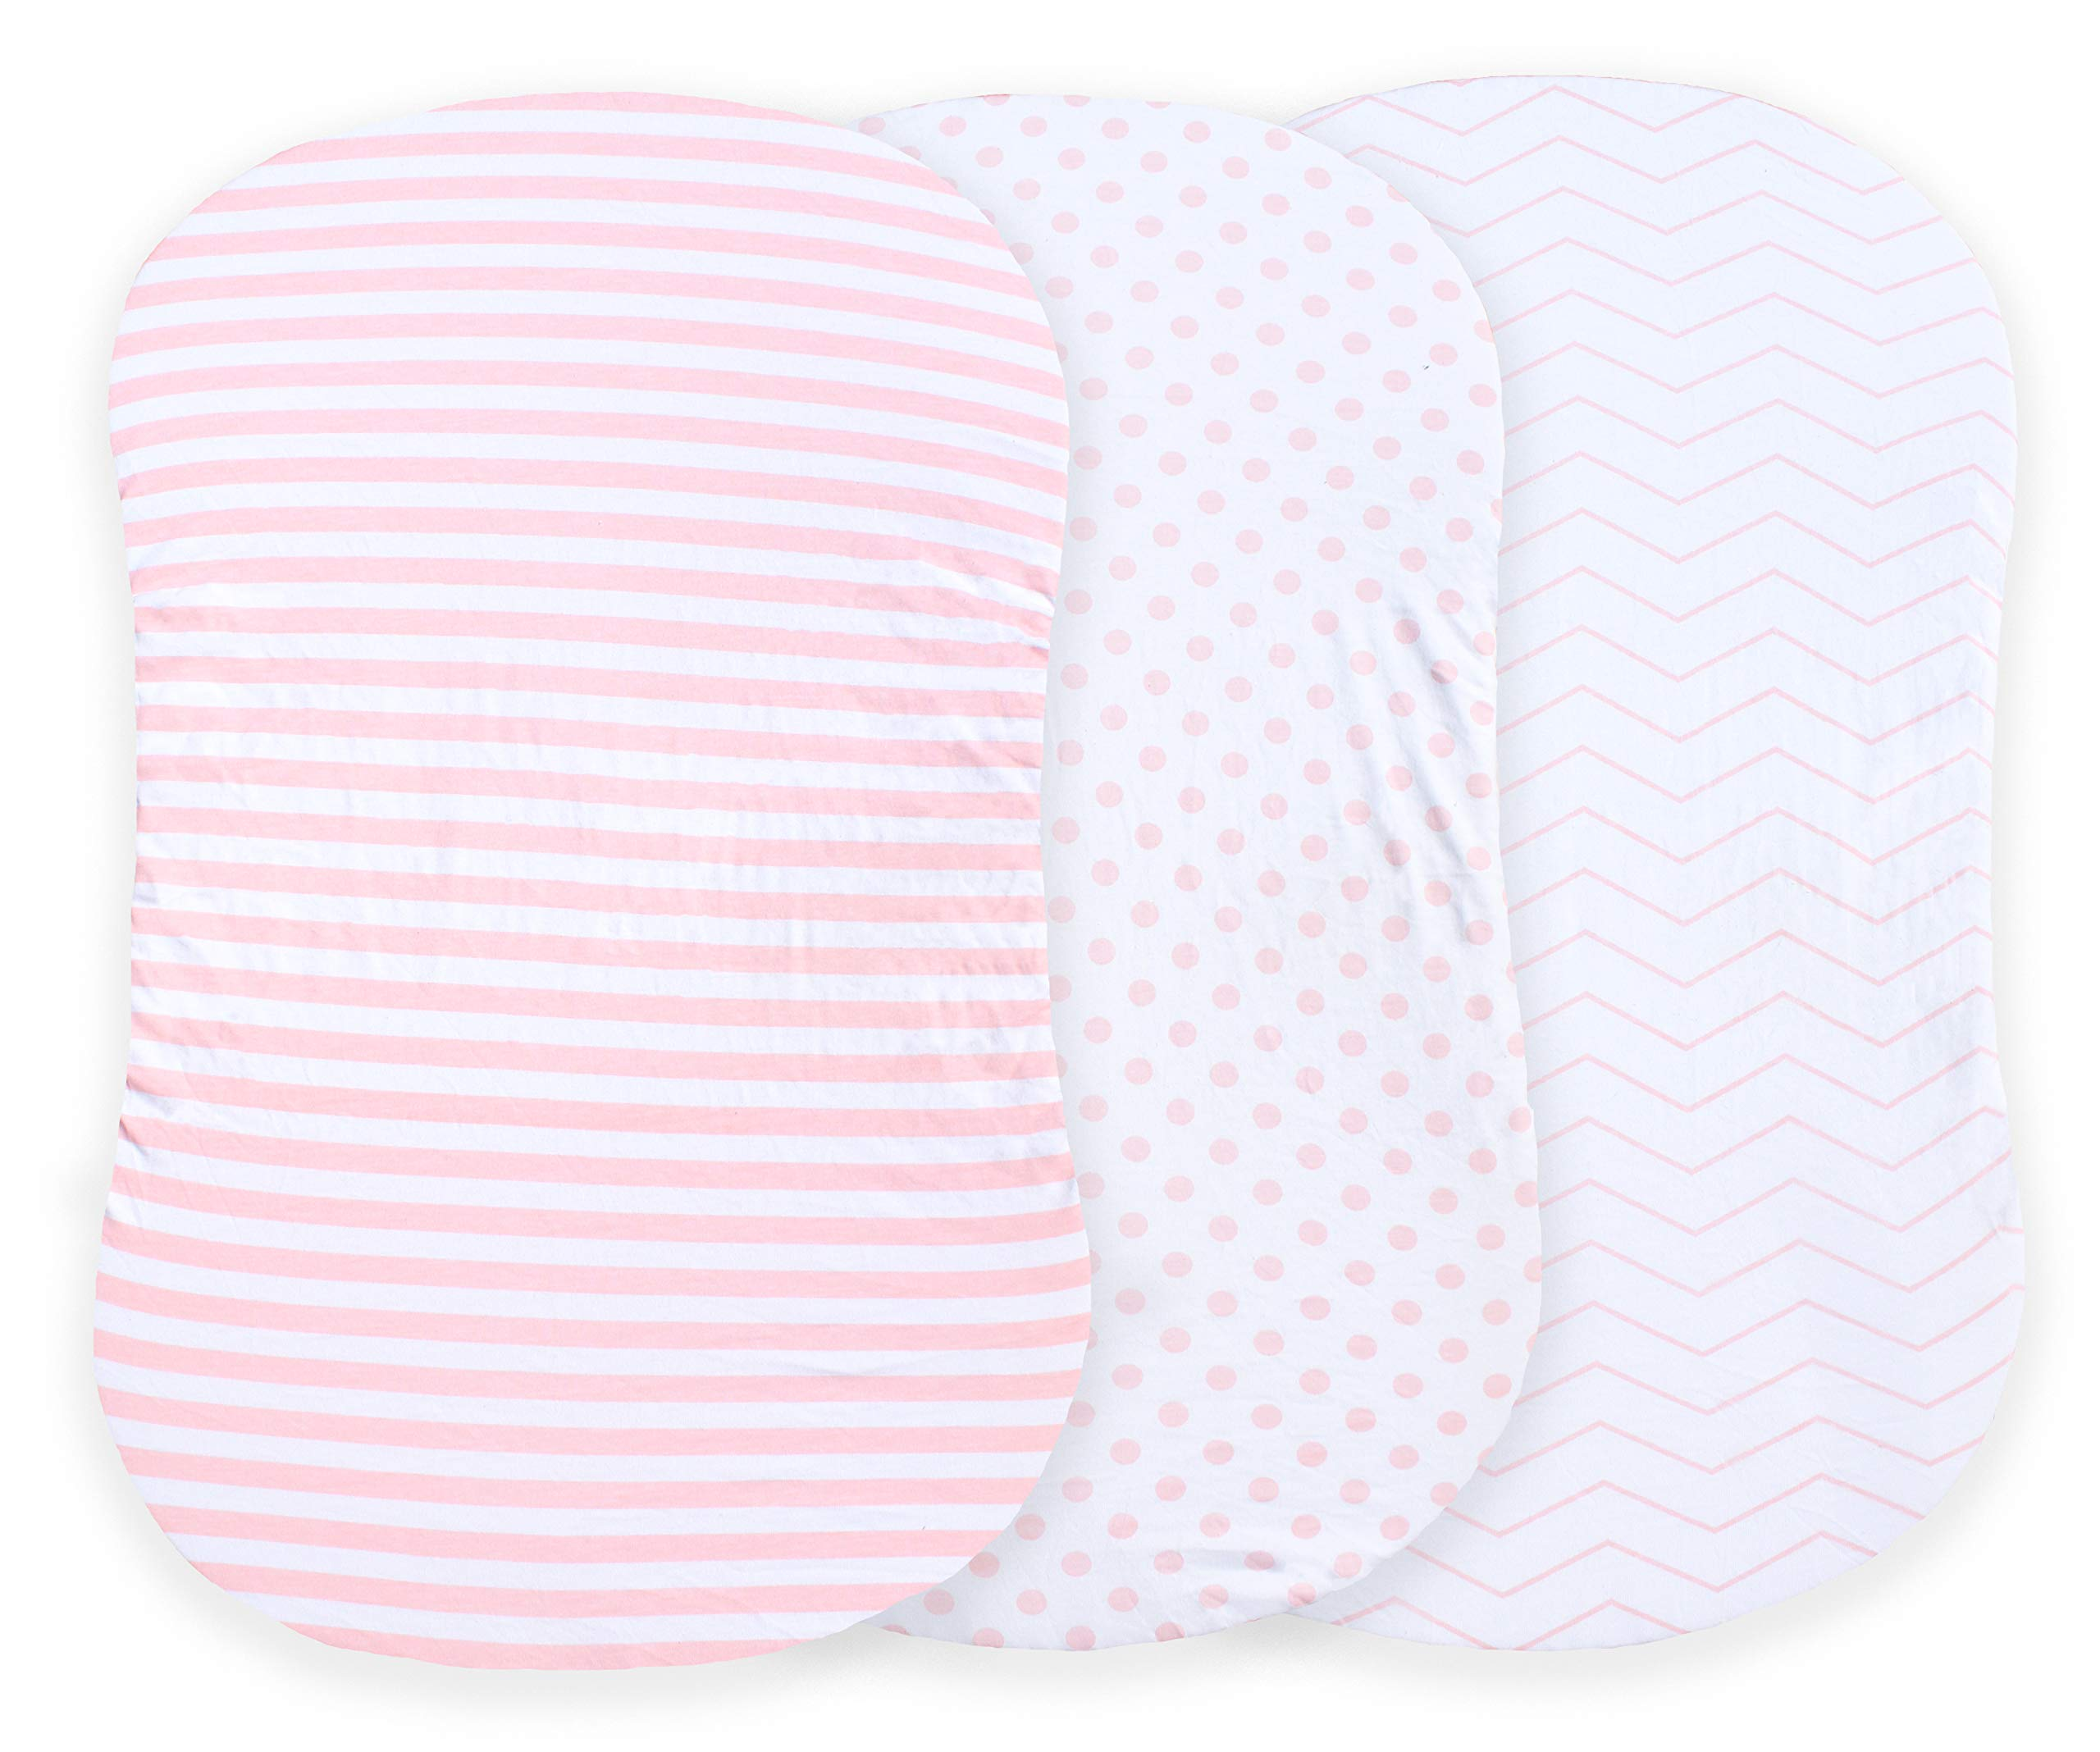 NODNAL CO. Pink Bassinet Fitted Sheet Set 3 Pack 100% Jersey Cotton for Baby Girl - Chevron, Polka Dot and Stripe 160 GSM Sheets by NODNAL CO. (Image #2)